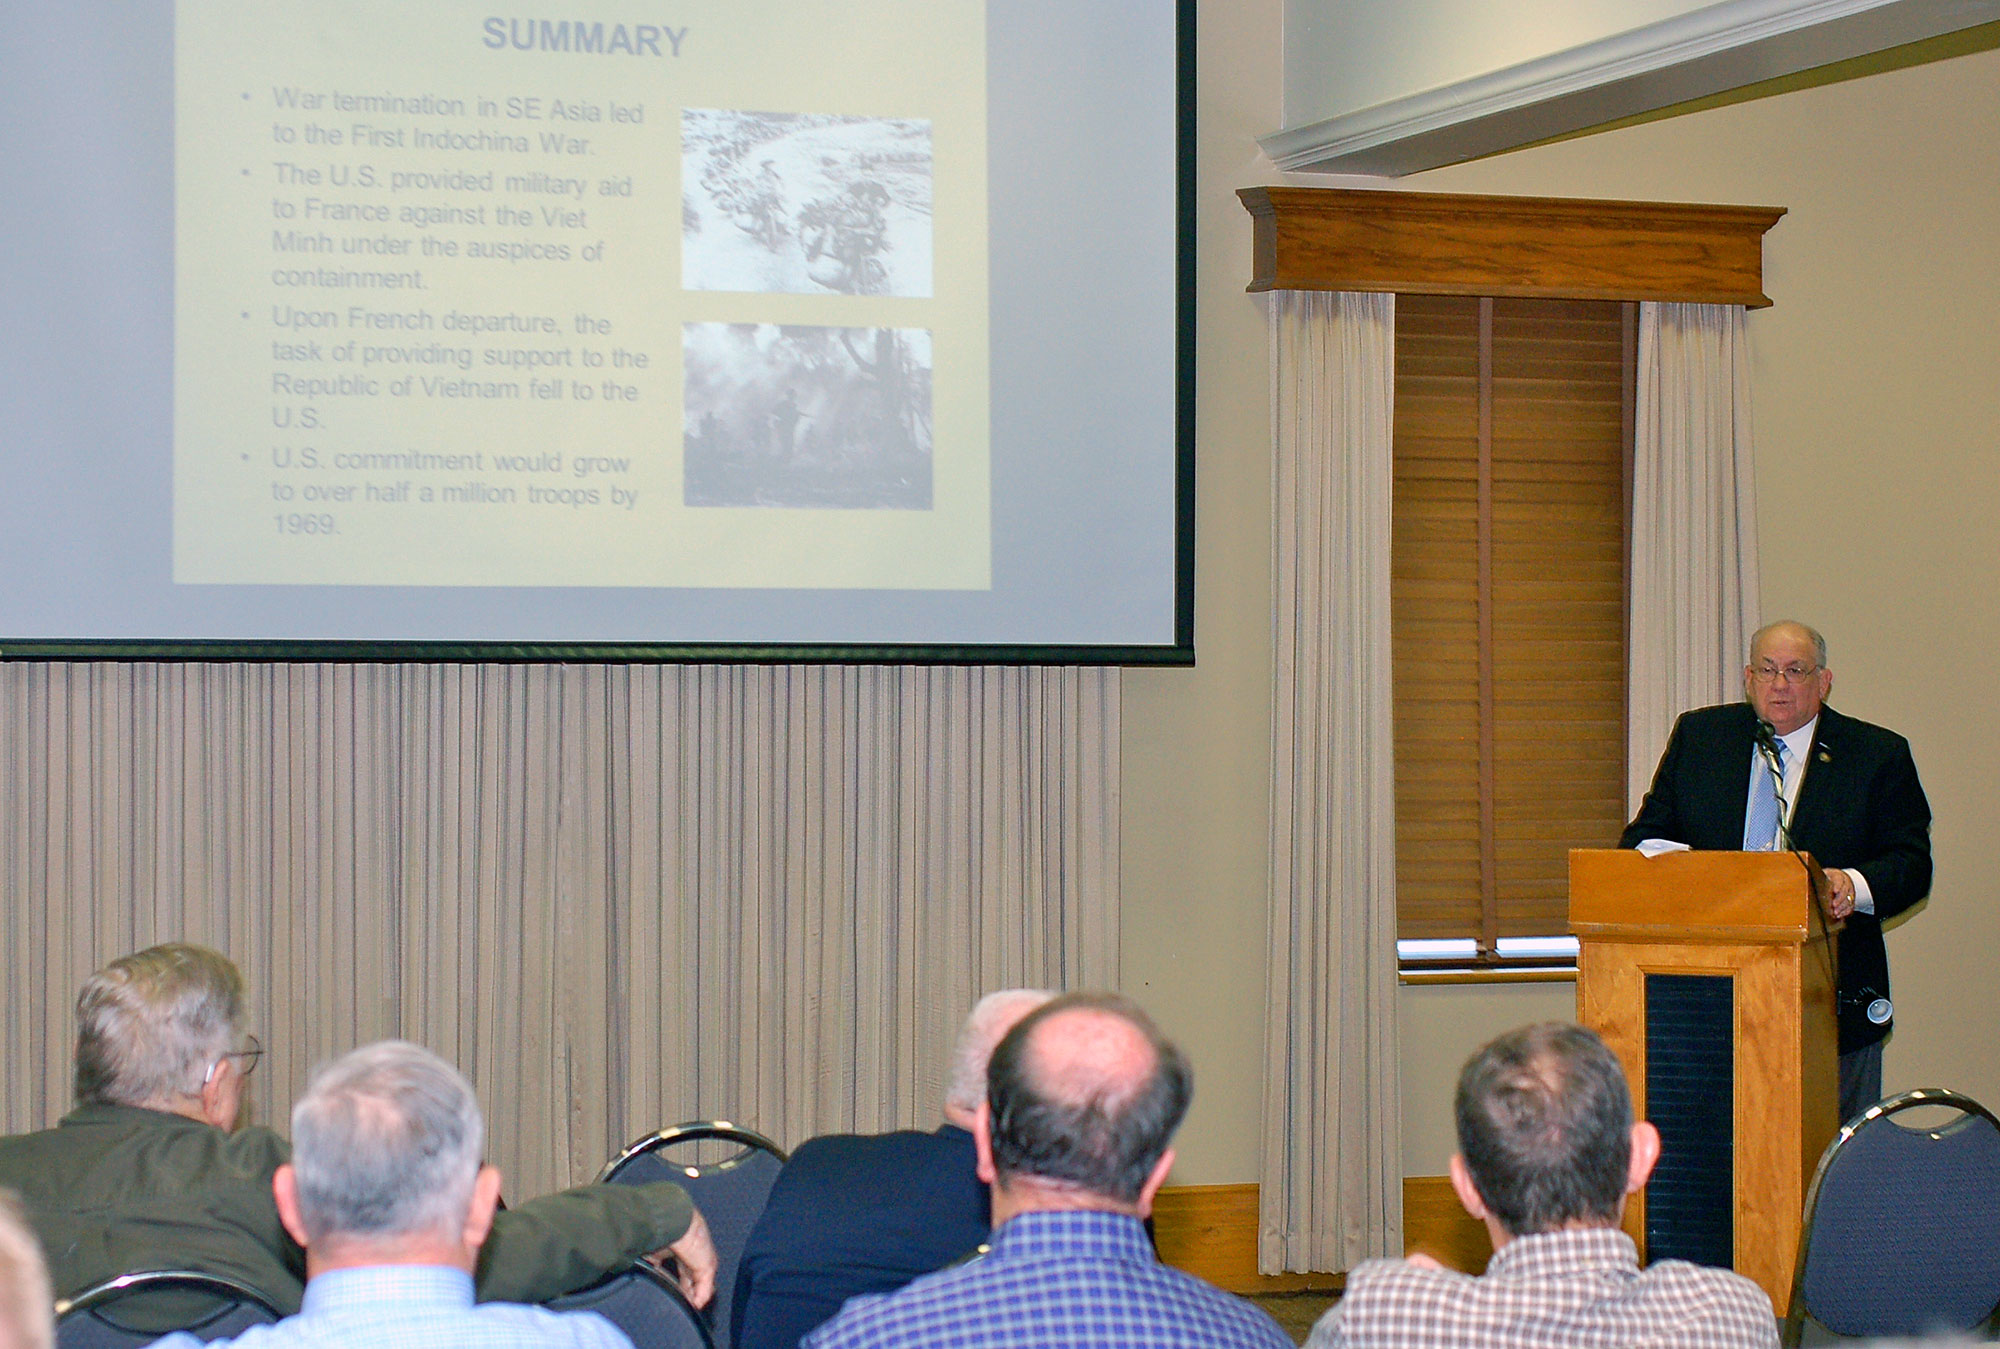 Dr. Jim Willbanks presents at the first lecture of the Vietnam War Commemoration Lecture Series on March 23, 2016, at the Riverfront Community Center in downtown Leavenworth, Kansas. The series was presented by CGSC's Dept. of Military History, and the U.S. Army Garrison Fort Leavenworth, and supported by the CGSC Foundation and the Henry Leavenworth Chapter of AUSA.